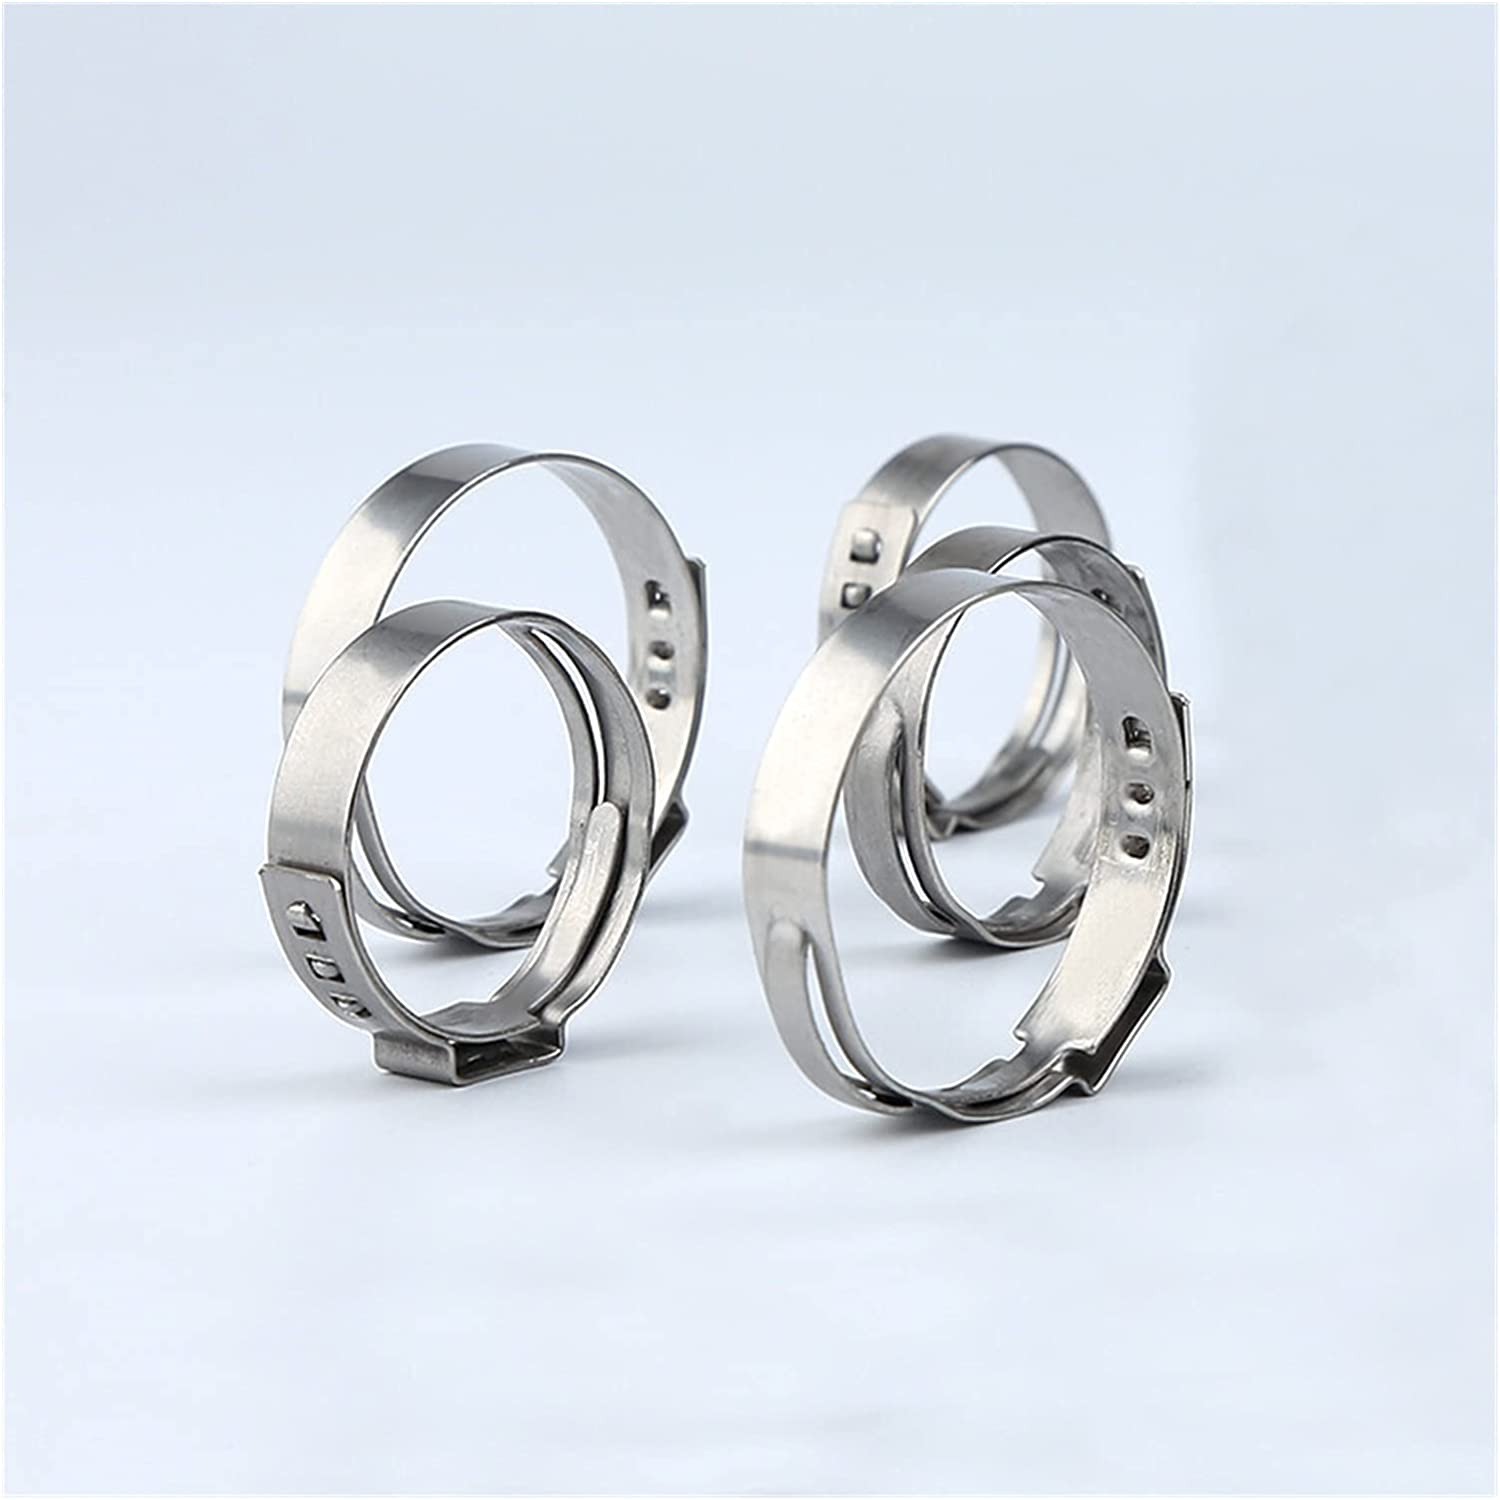 20 pcs an ear stepless hose clip clamps Under blast sales 304 pipe stainless steel Nashville-Davidson Mall